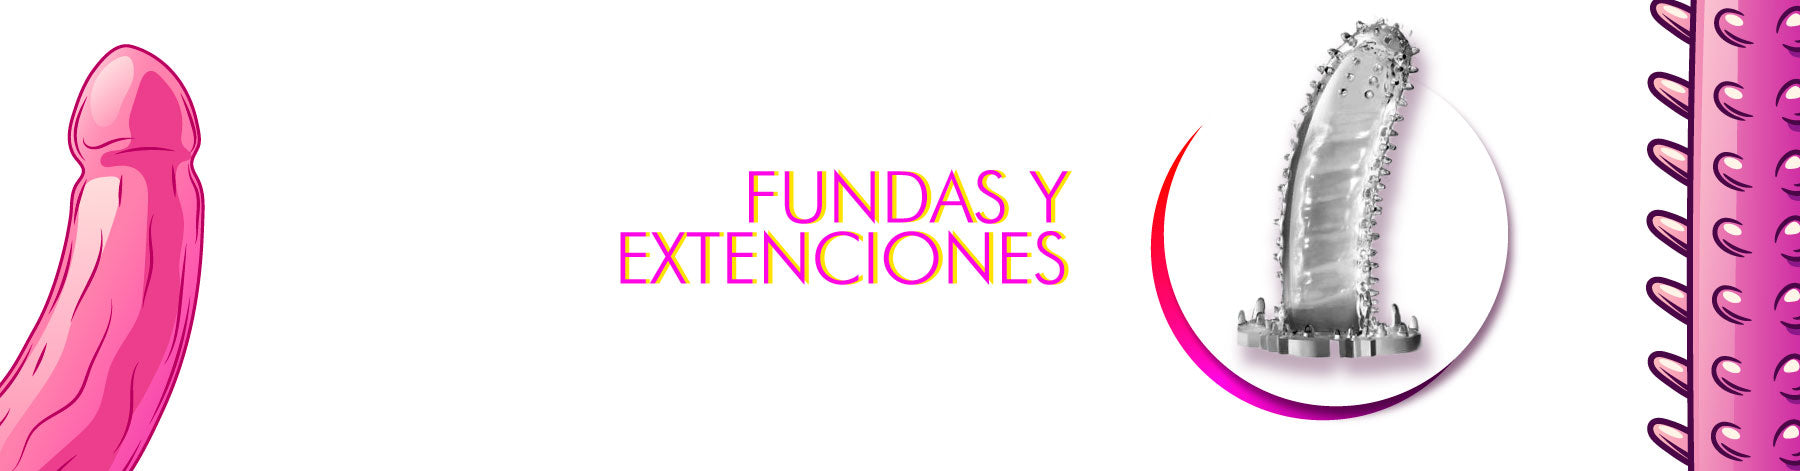 kinky toys sex shop fundas y extensiones